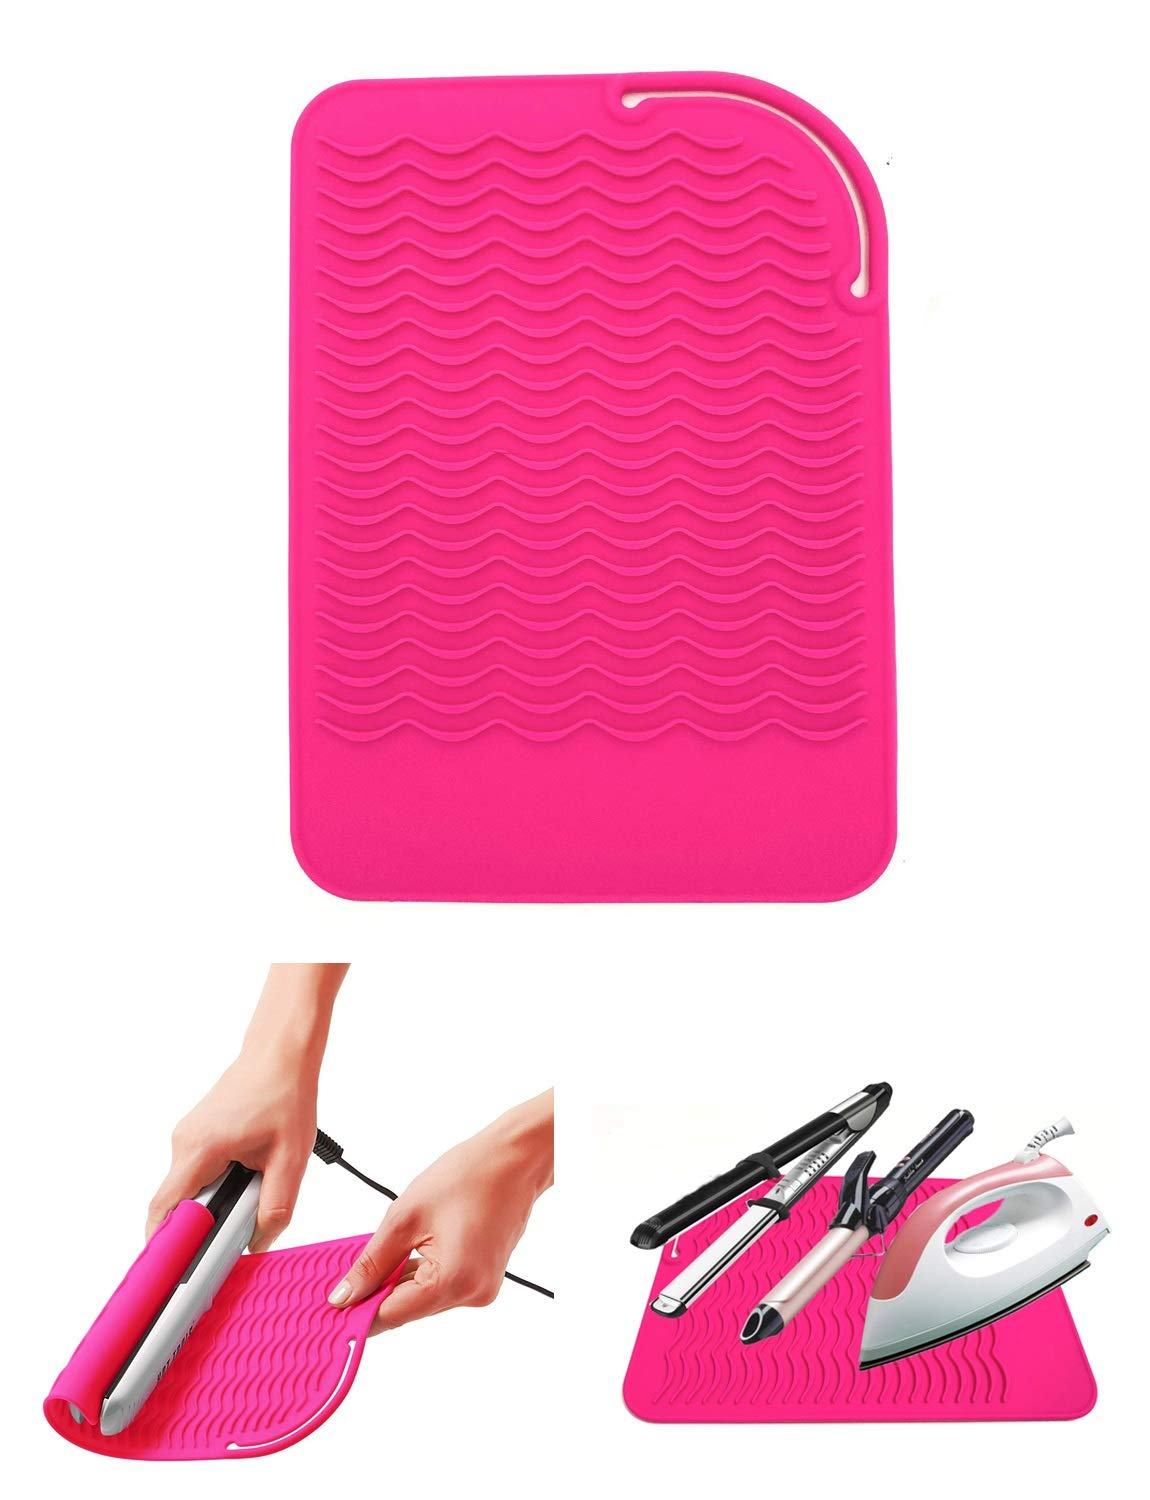 Curling Iron Holder, Heat Resistant Silicone Mat, Portable, Fast Chilling, Food Grade Material for Curling Iron, Hair Straightener, Curling Wand Storage, Pink